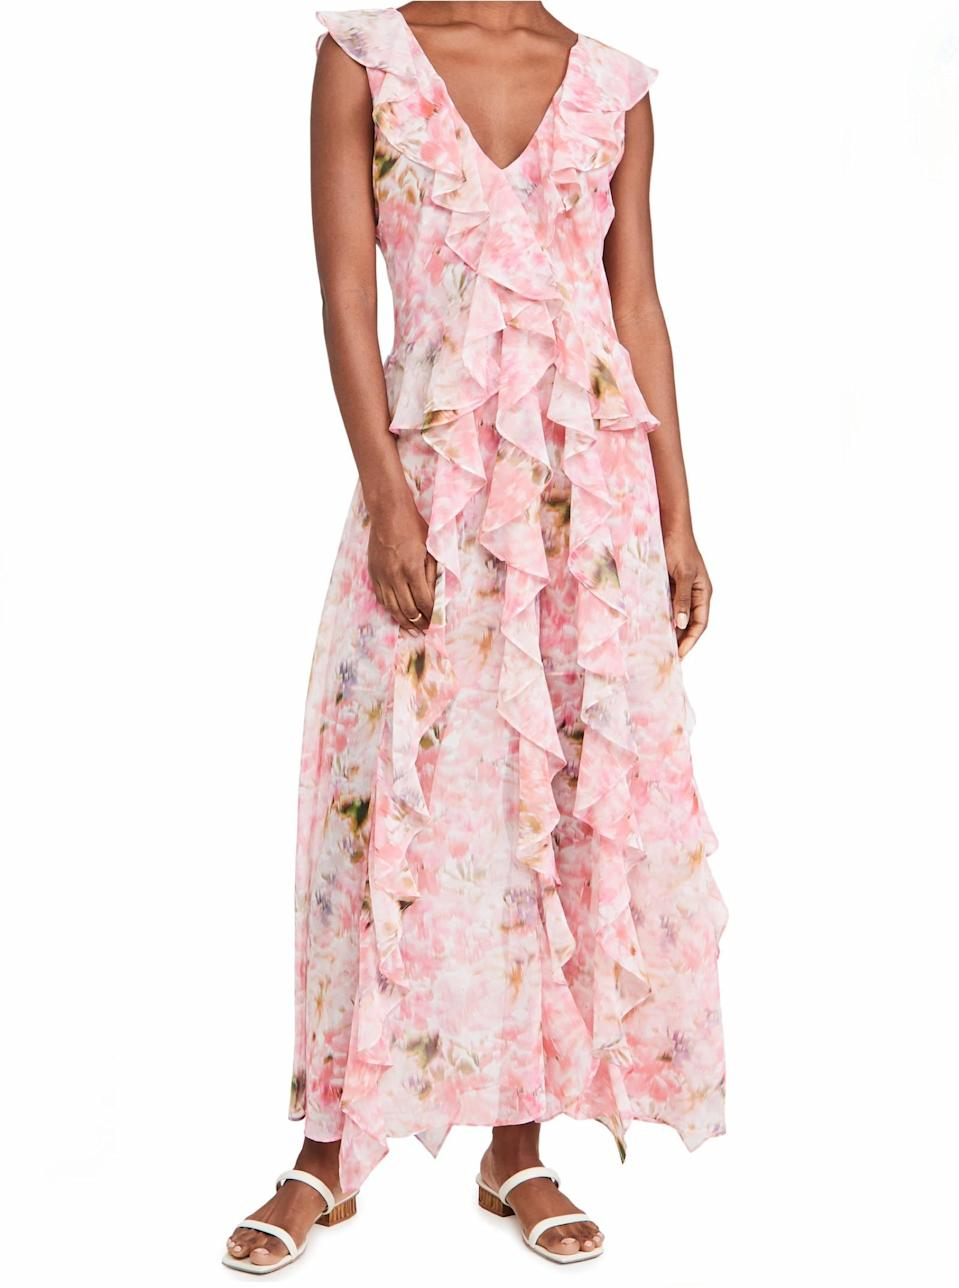 """This ruffly pink dress is ideal for anyone who's still mad they never got to be a flower girl. $410, Shopbop. <a href=""""https://www.shopbop.com/claudita-dress-misa/vp/v=1/1534328390.htm"""" rel=""""nofollow noopener"""" target=""""_blank"""" data-ylk=""""slk:Get it now!"""" class=""""link rapid-noclick-resp"""">Get it now!</a>"""